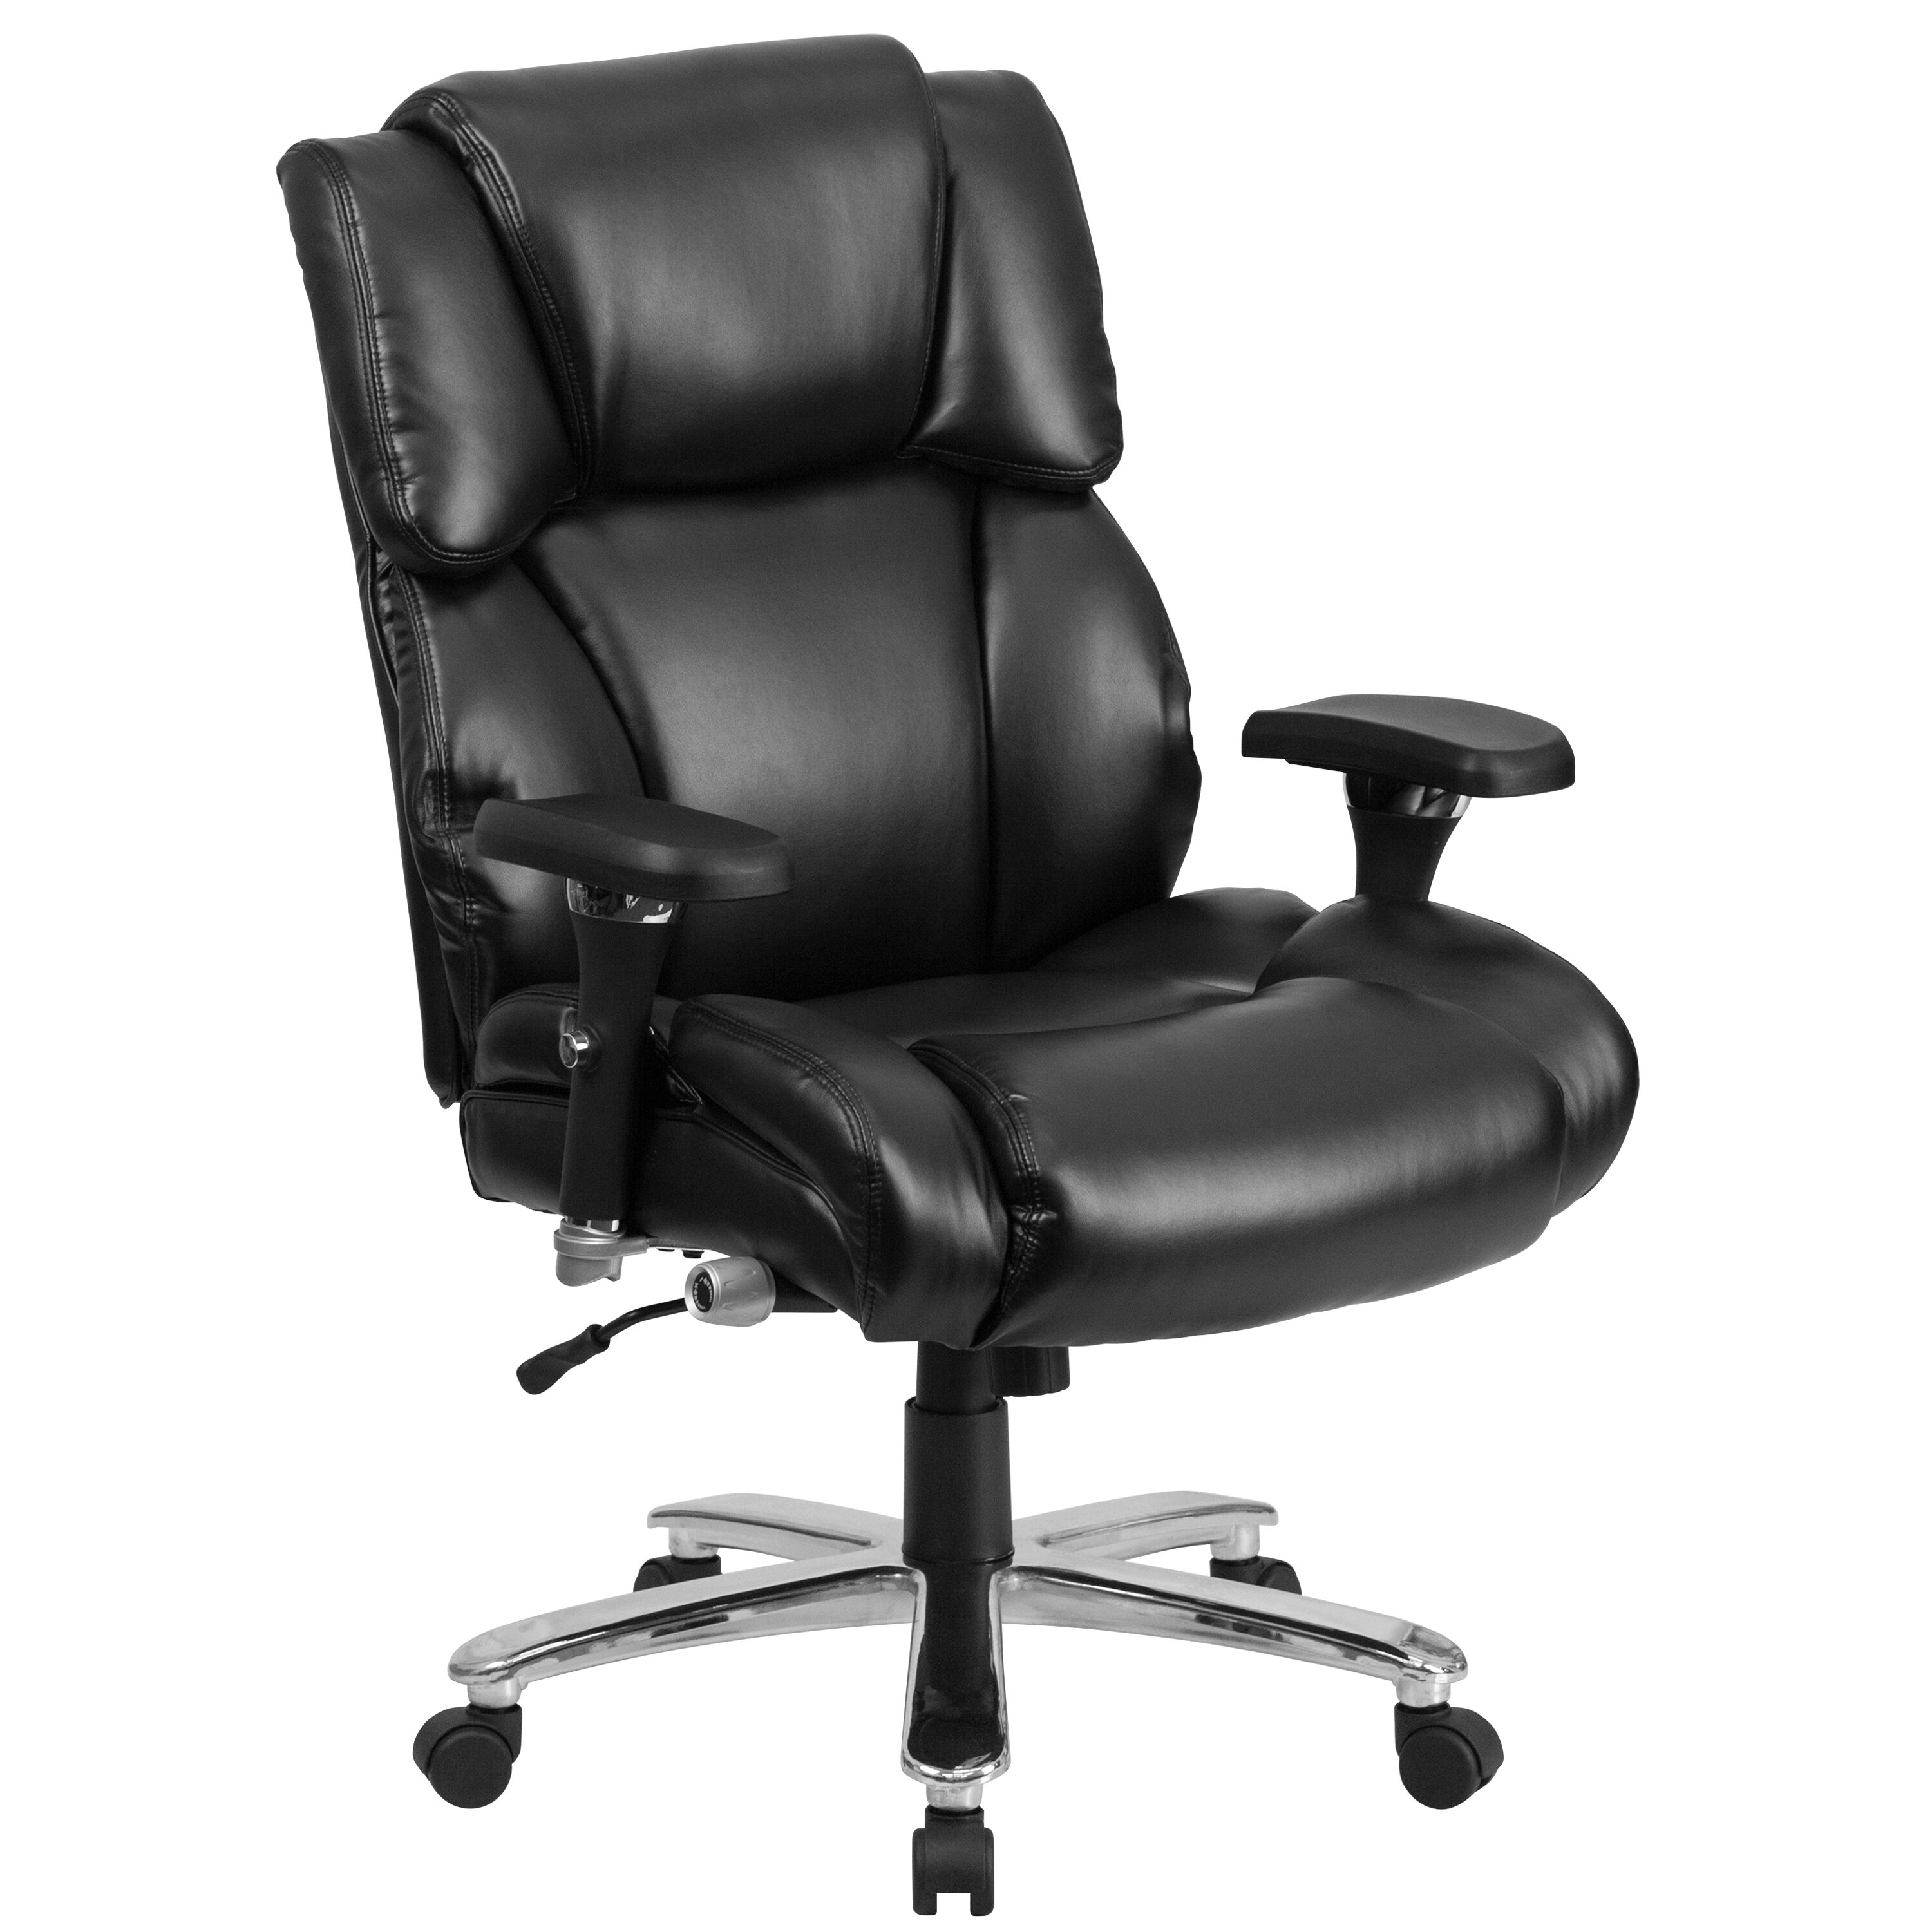 big and tall office chairs floral arm chair bizchair com hercules series 24 7 intensive use 400 lb rated black leather